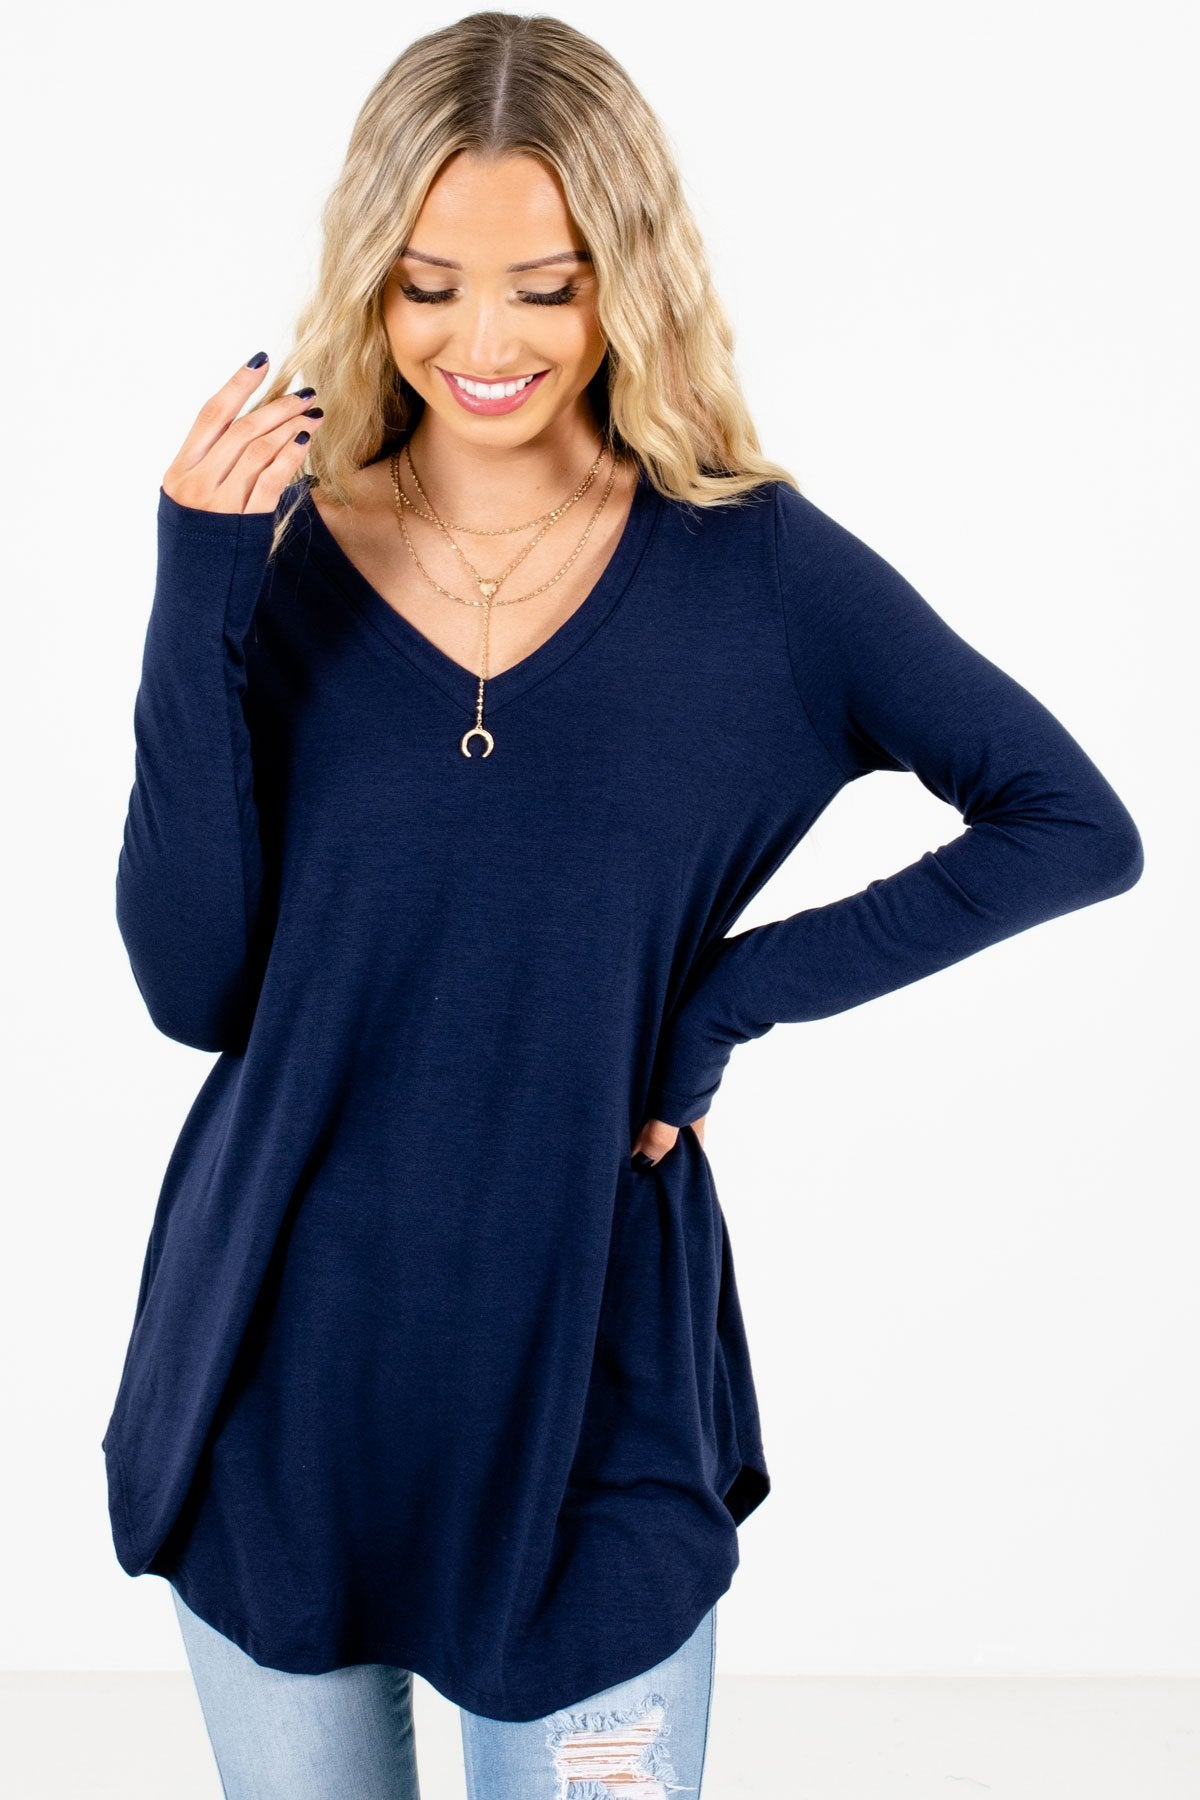 Navy Blue V-Neckline Boutique Tops for Women